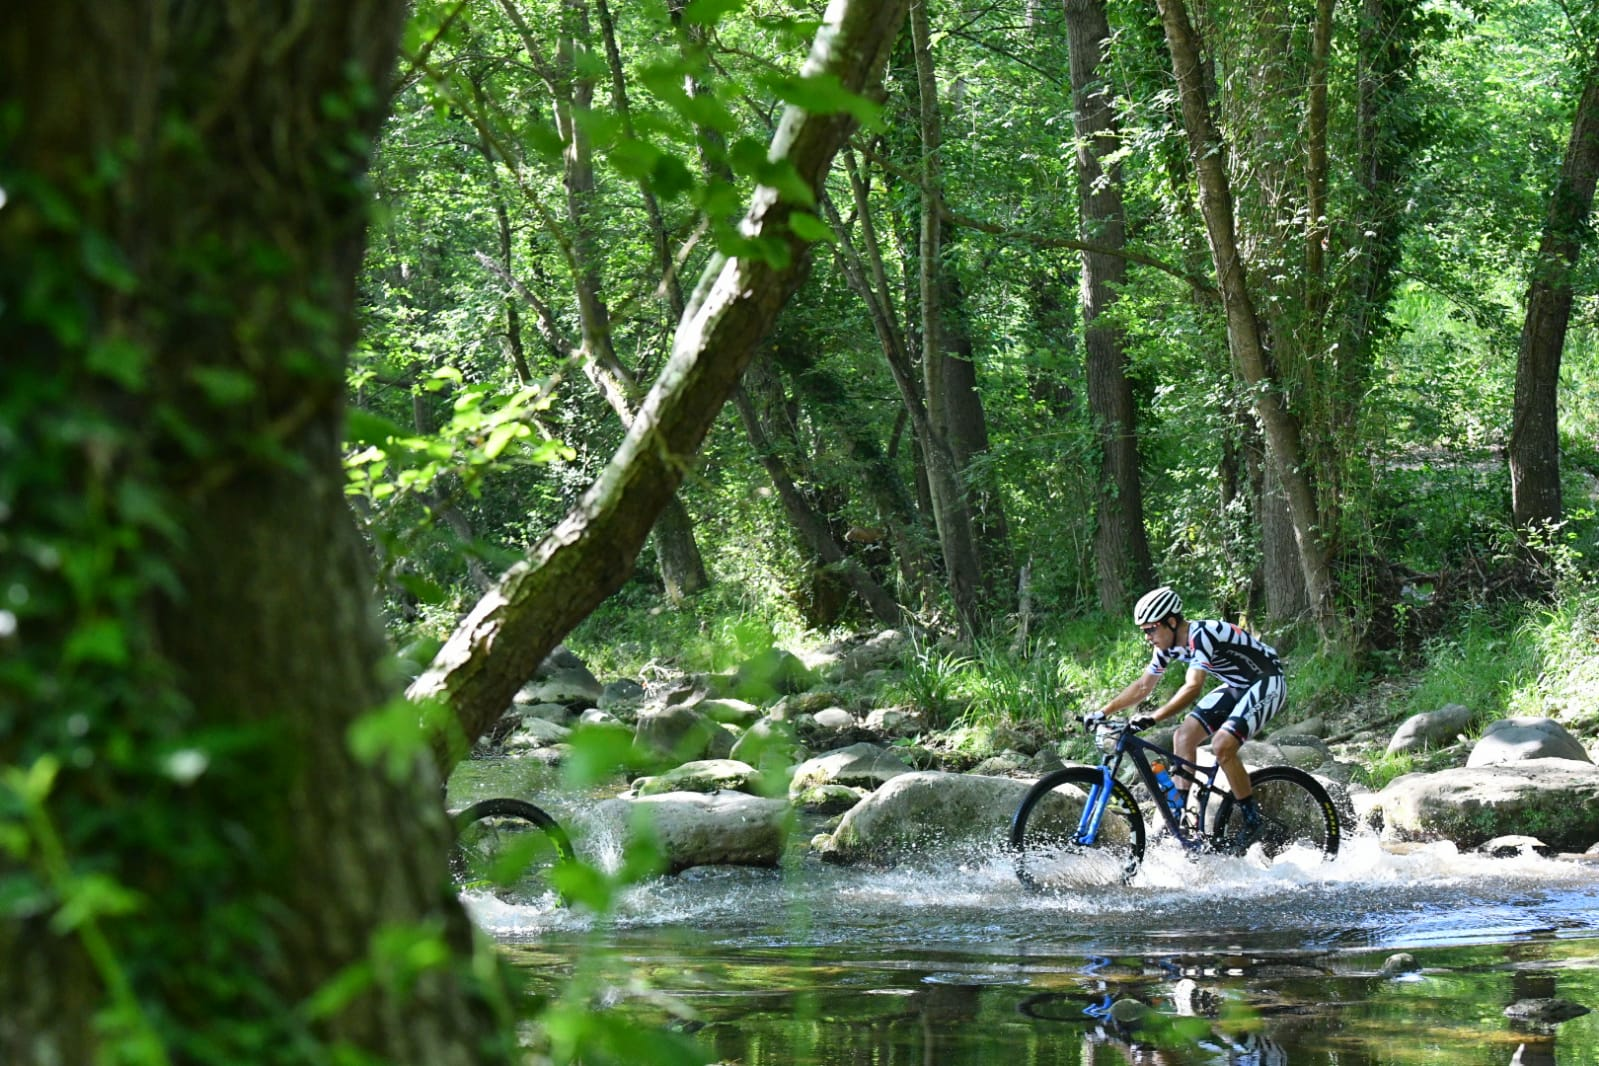 Becking and Janas win the Scott Marathon Cup of Sea Otter Europe on a day of pure mountain biking